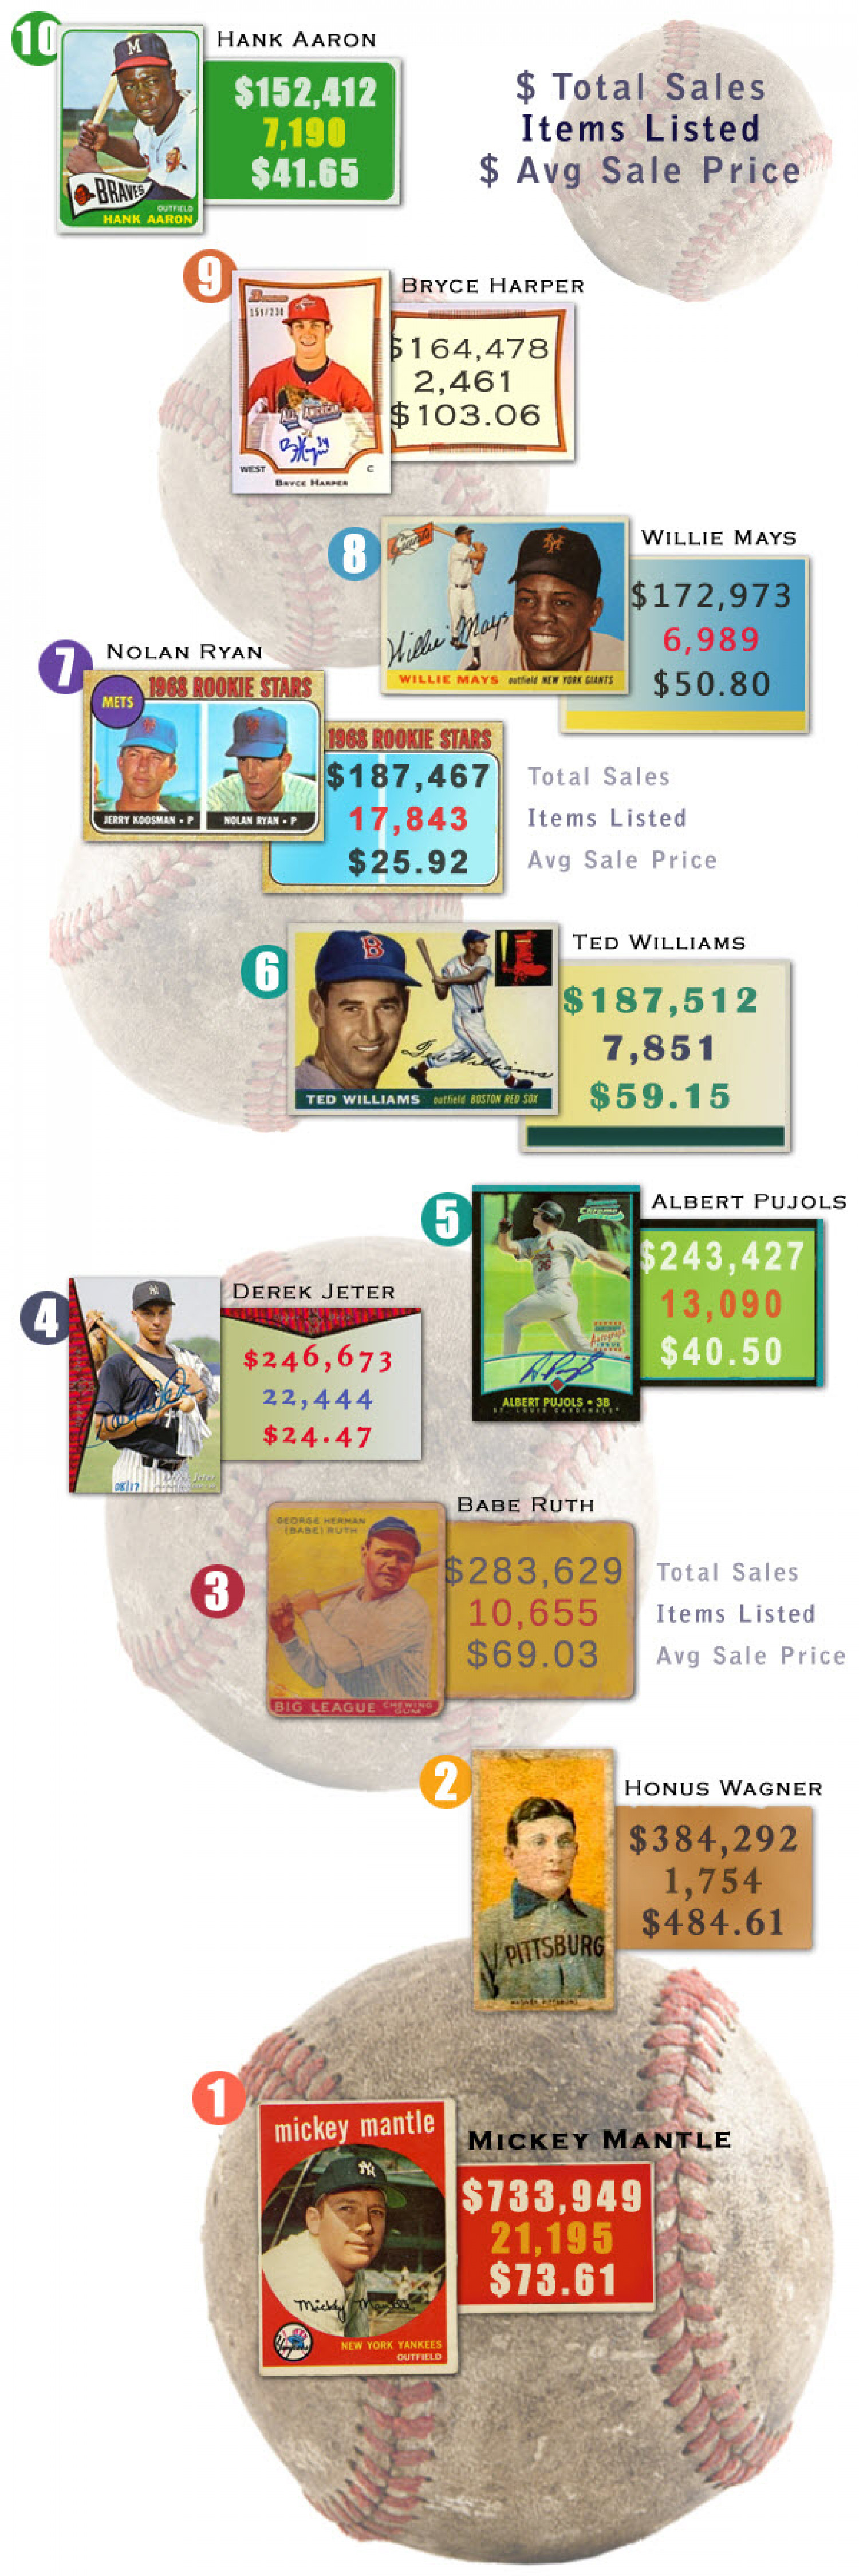 Top 10 Best Selling Baseball Players on eBay Infographic